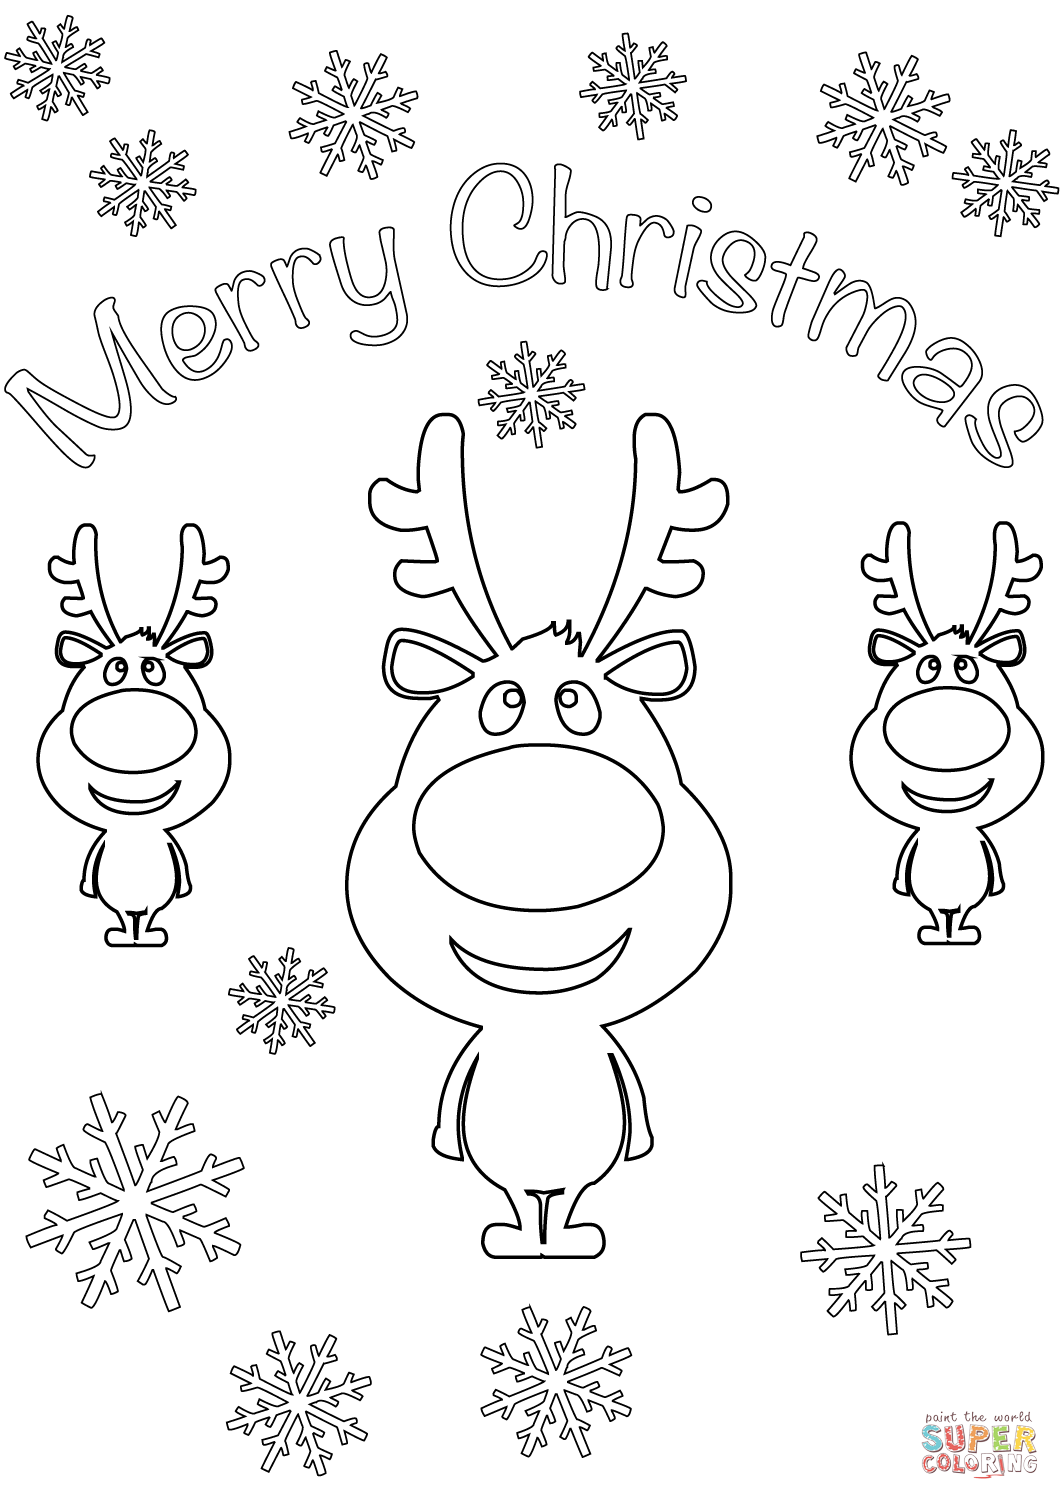 Merry Christmas Card With Cartoon Reindeers Coloring Page Free